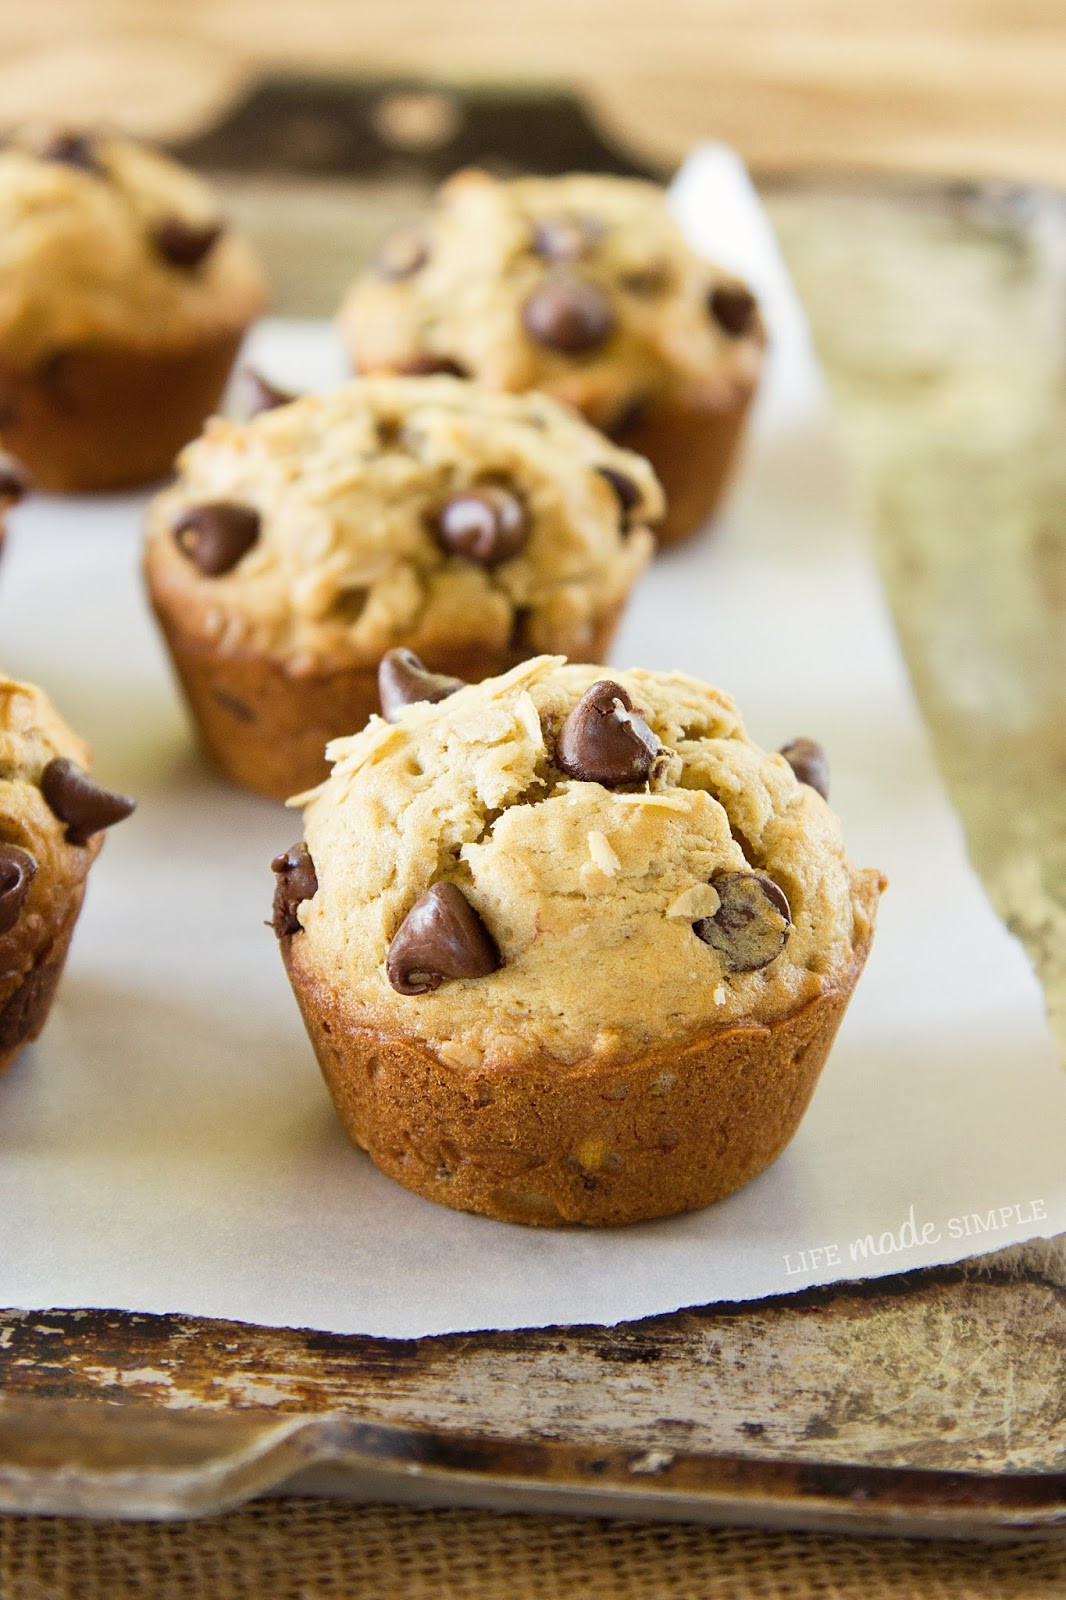 Healthy Oatmeal Chocolate Chip Muffins  Oatmeal Chocolate Chip Banana Muffins Life Made Simple